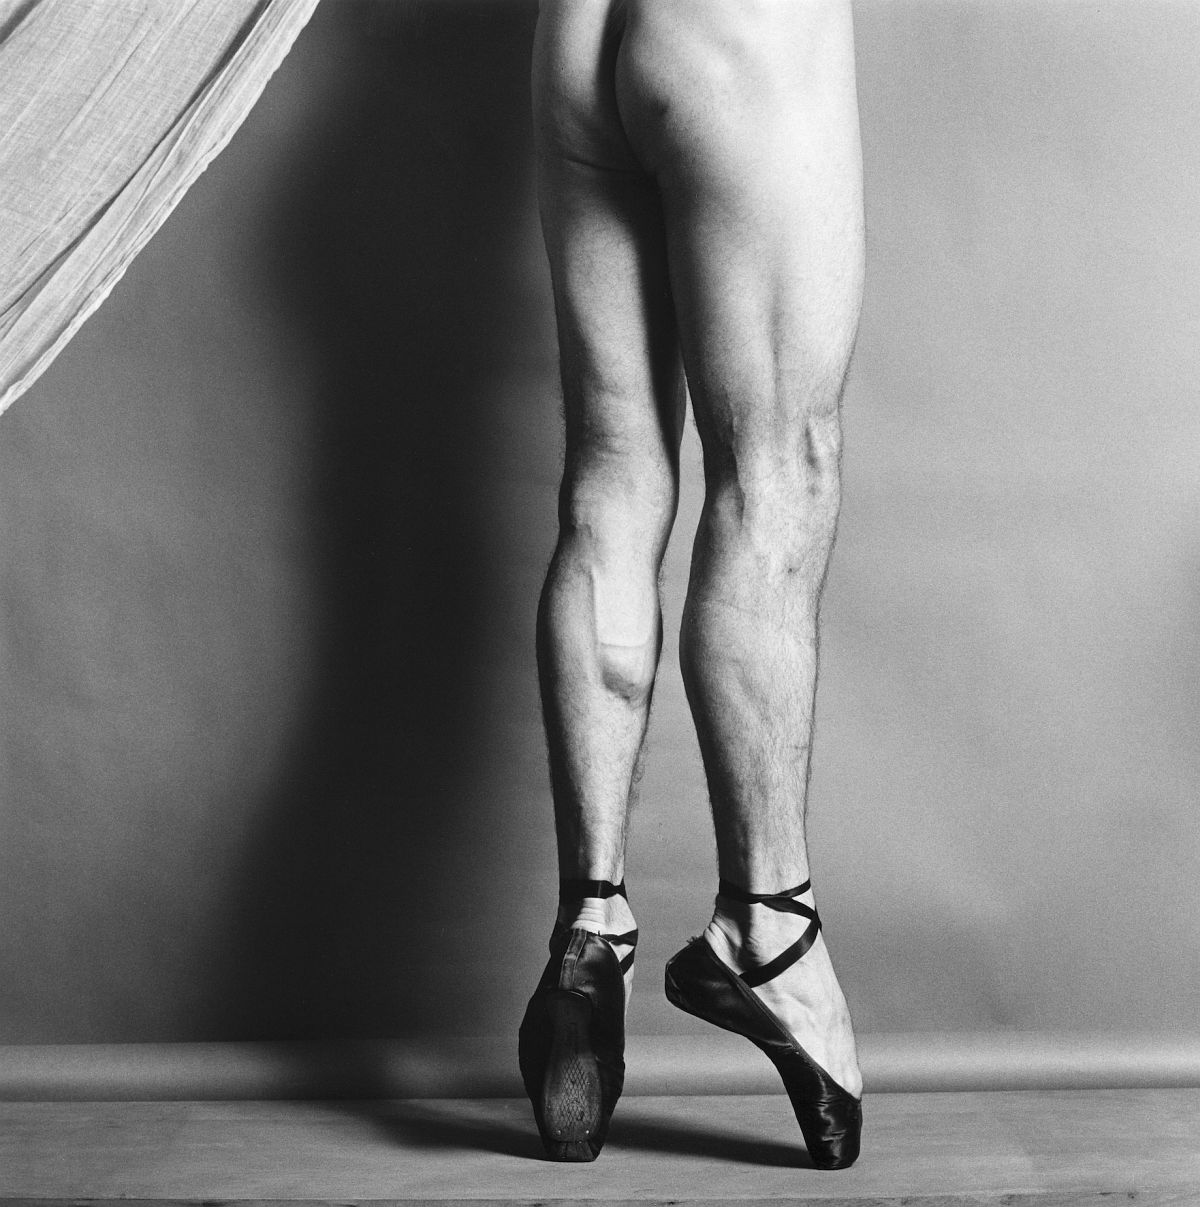 Philip, 1979 © Robert Mapplethorpe Foundation. Used by permission